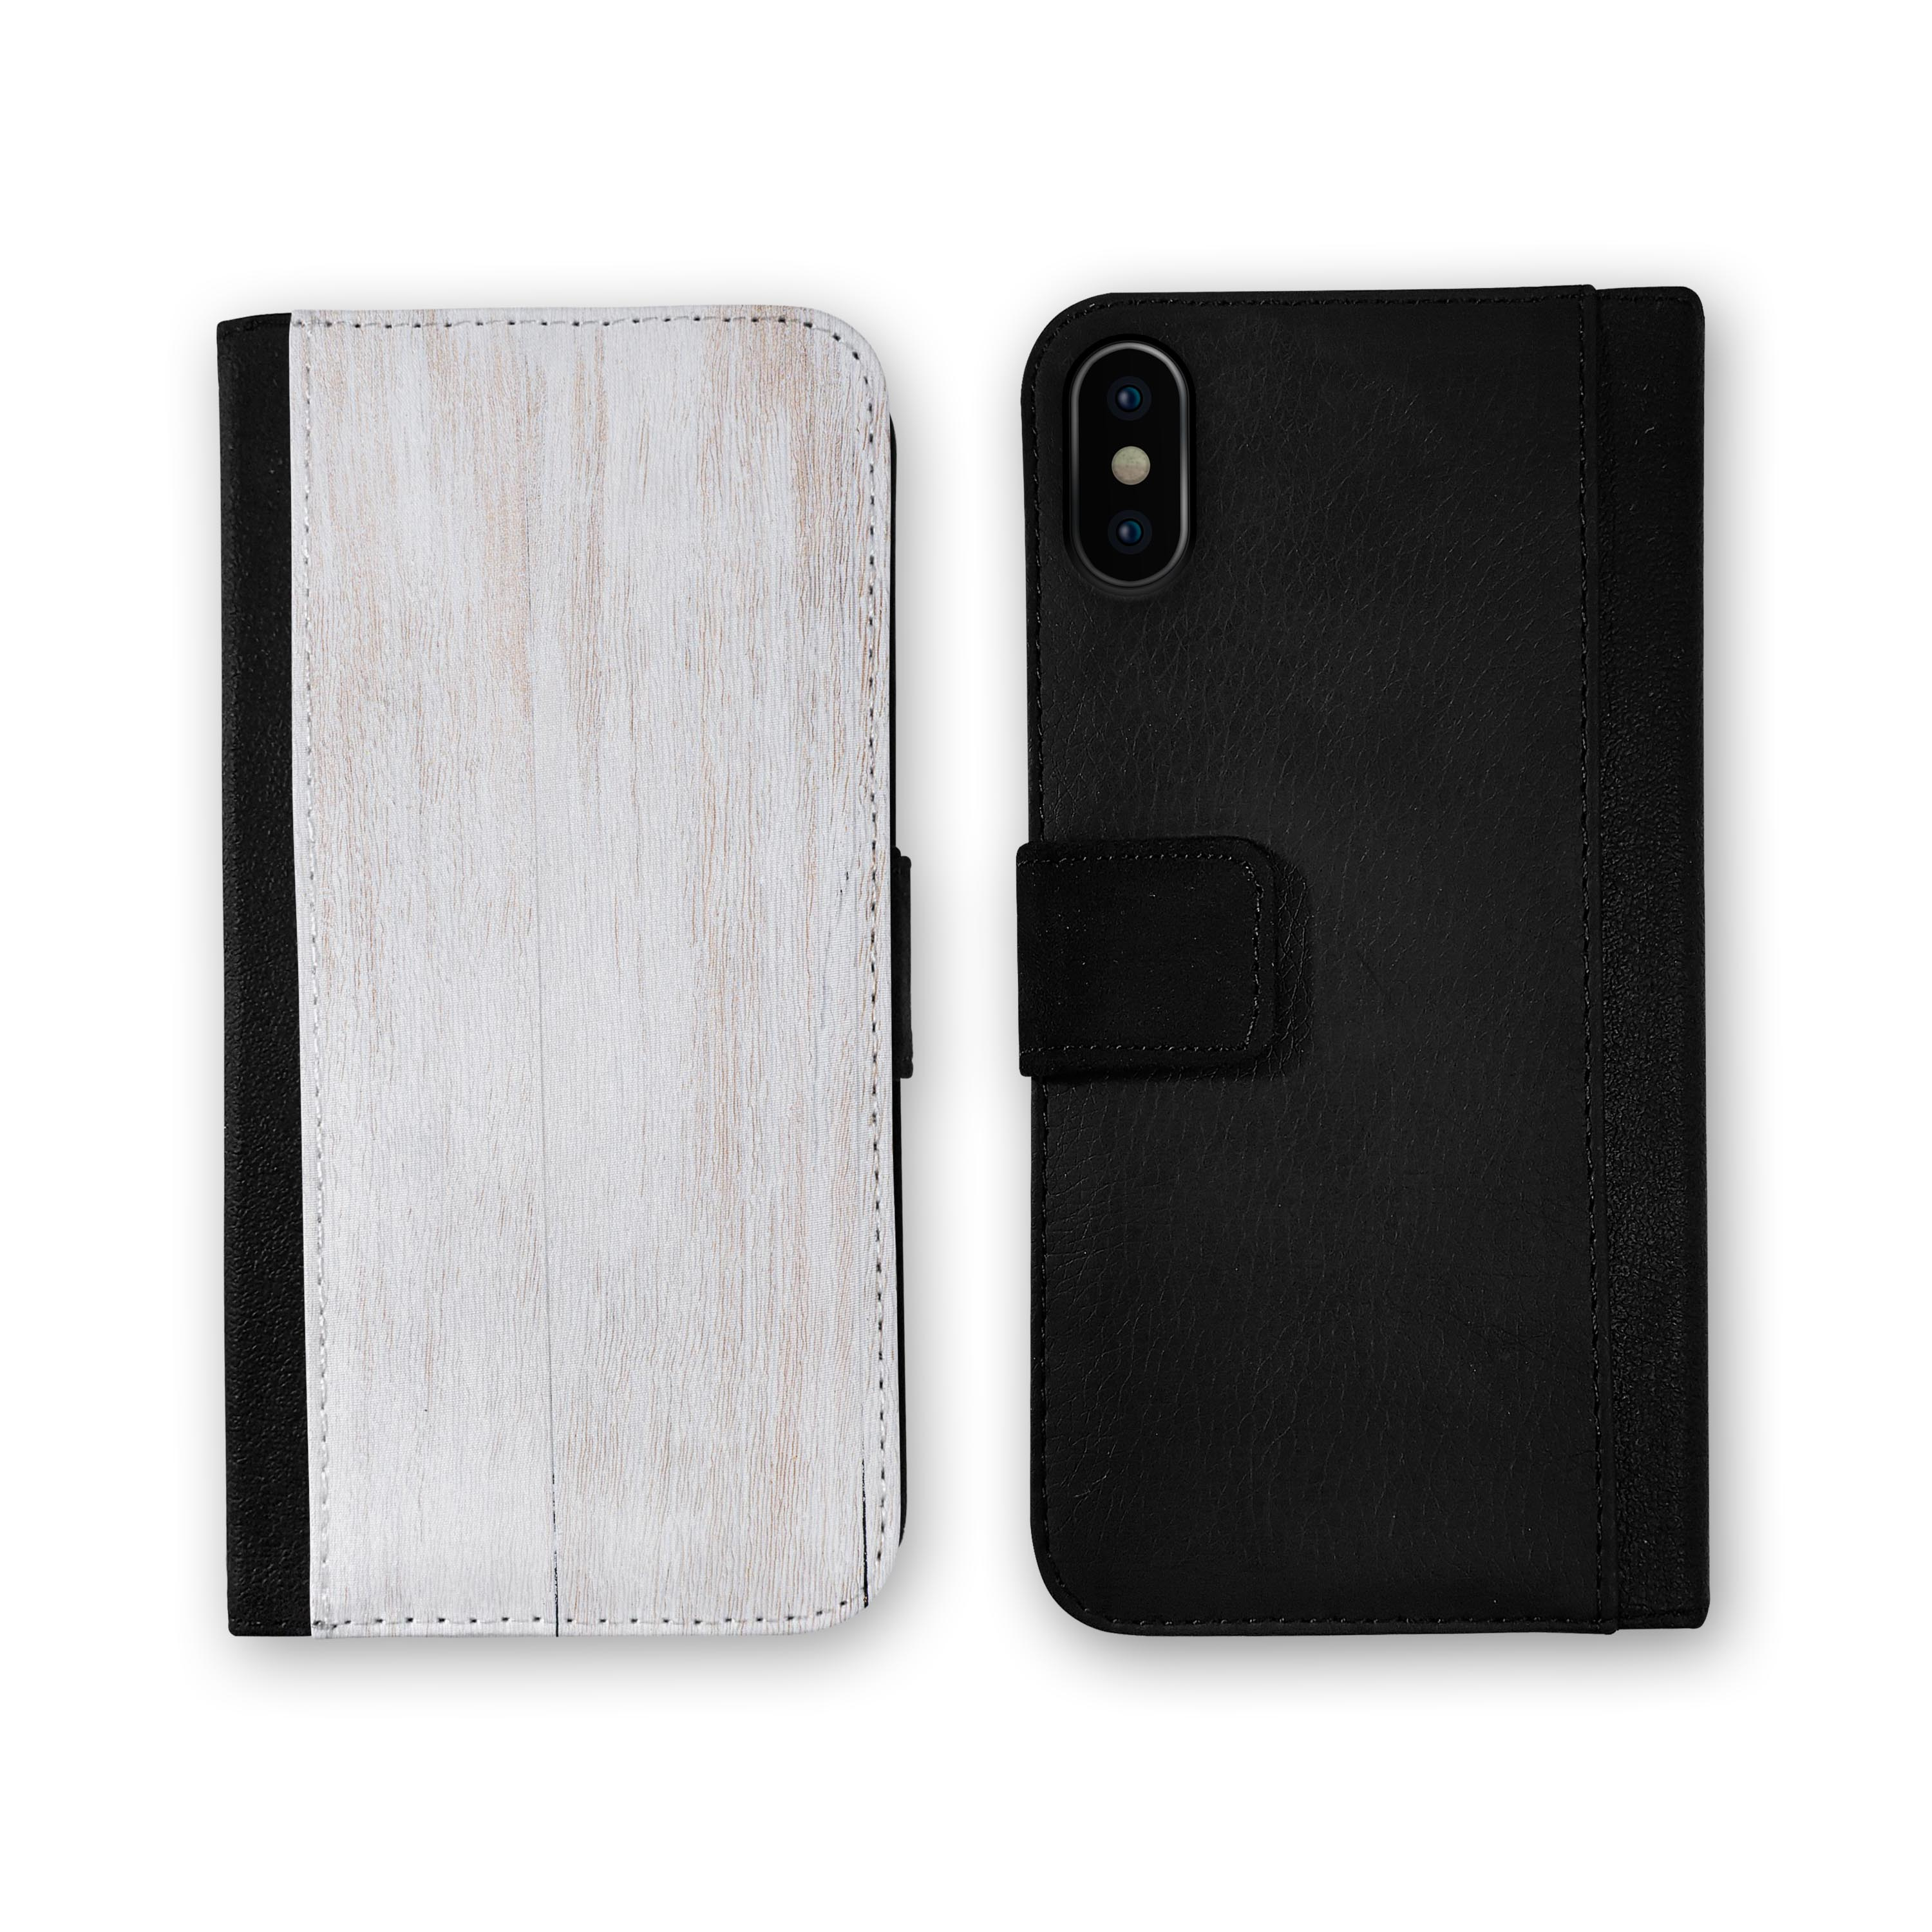 Light-White-Wood-Planks-iPhone-Leather-Credit-Card-Wallet-Case thumbnail 6